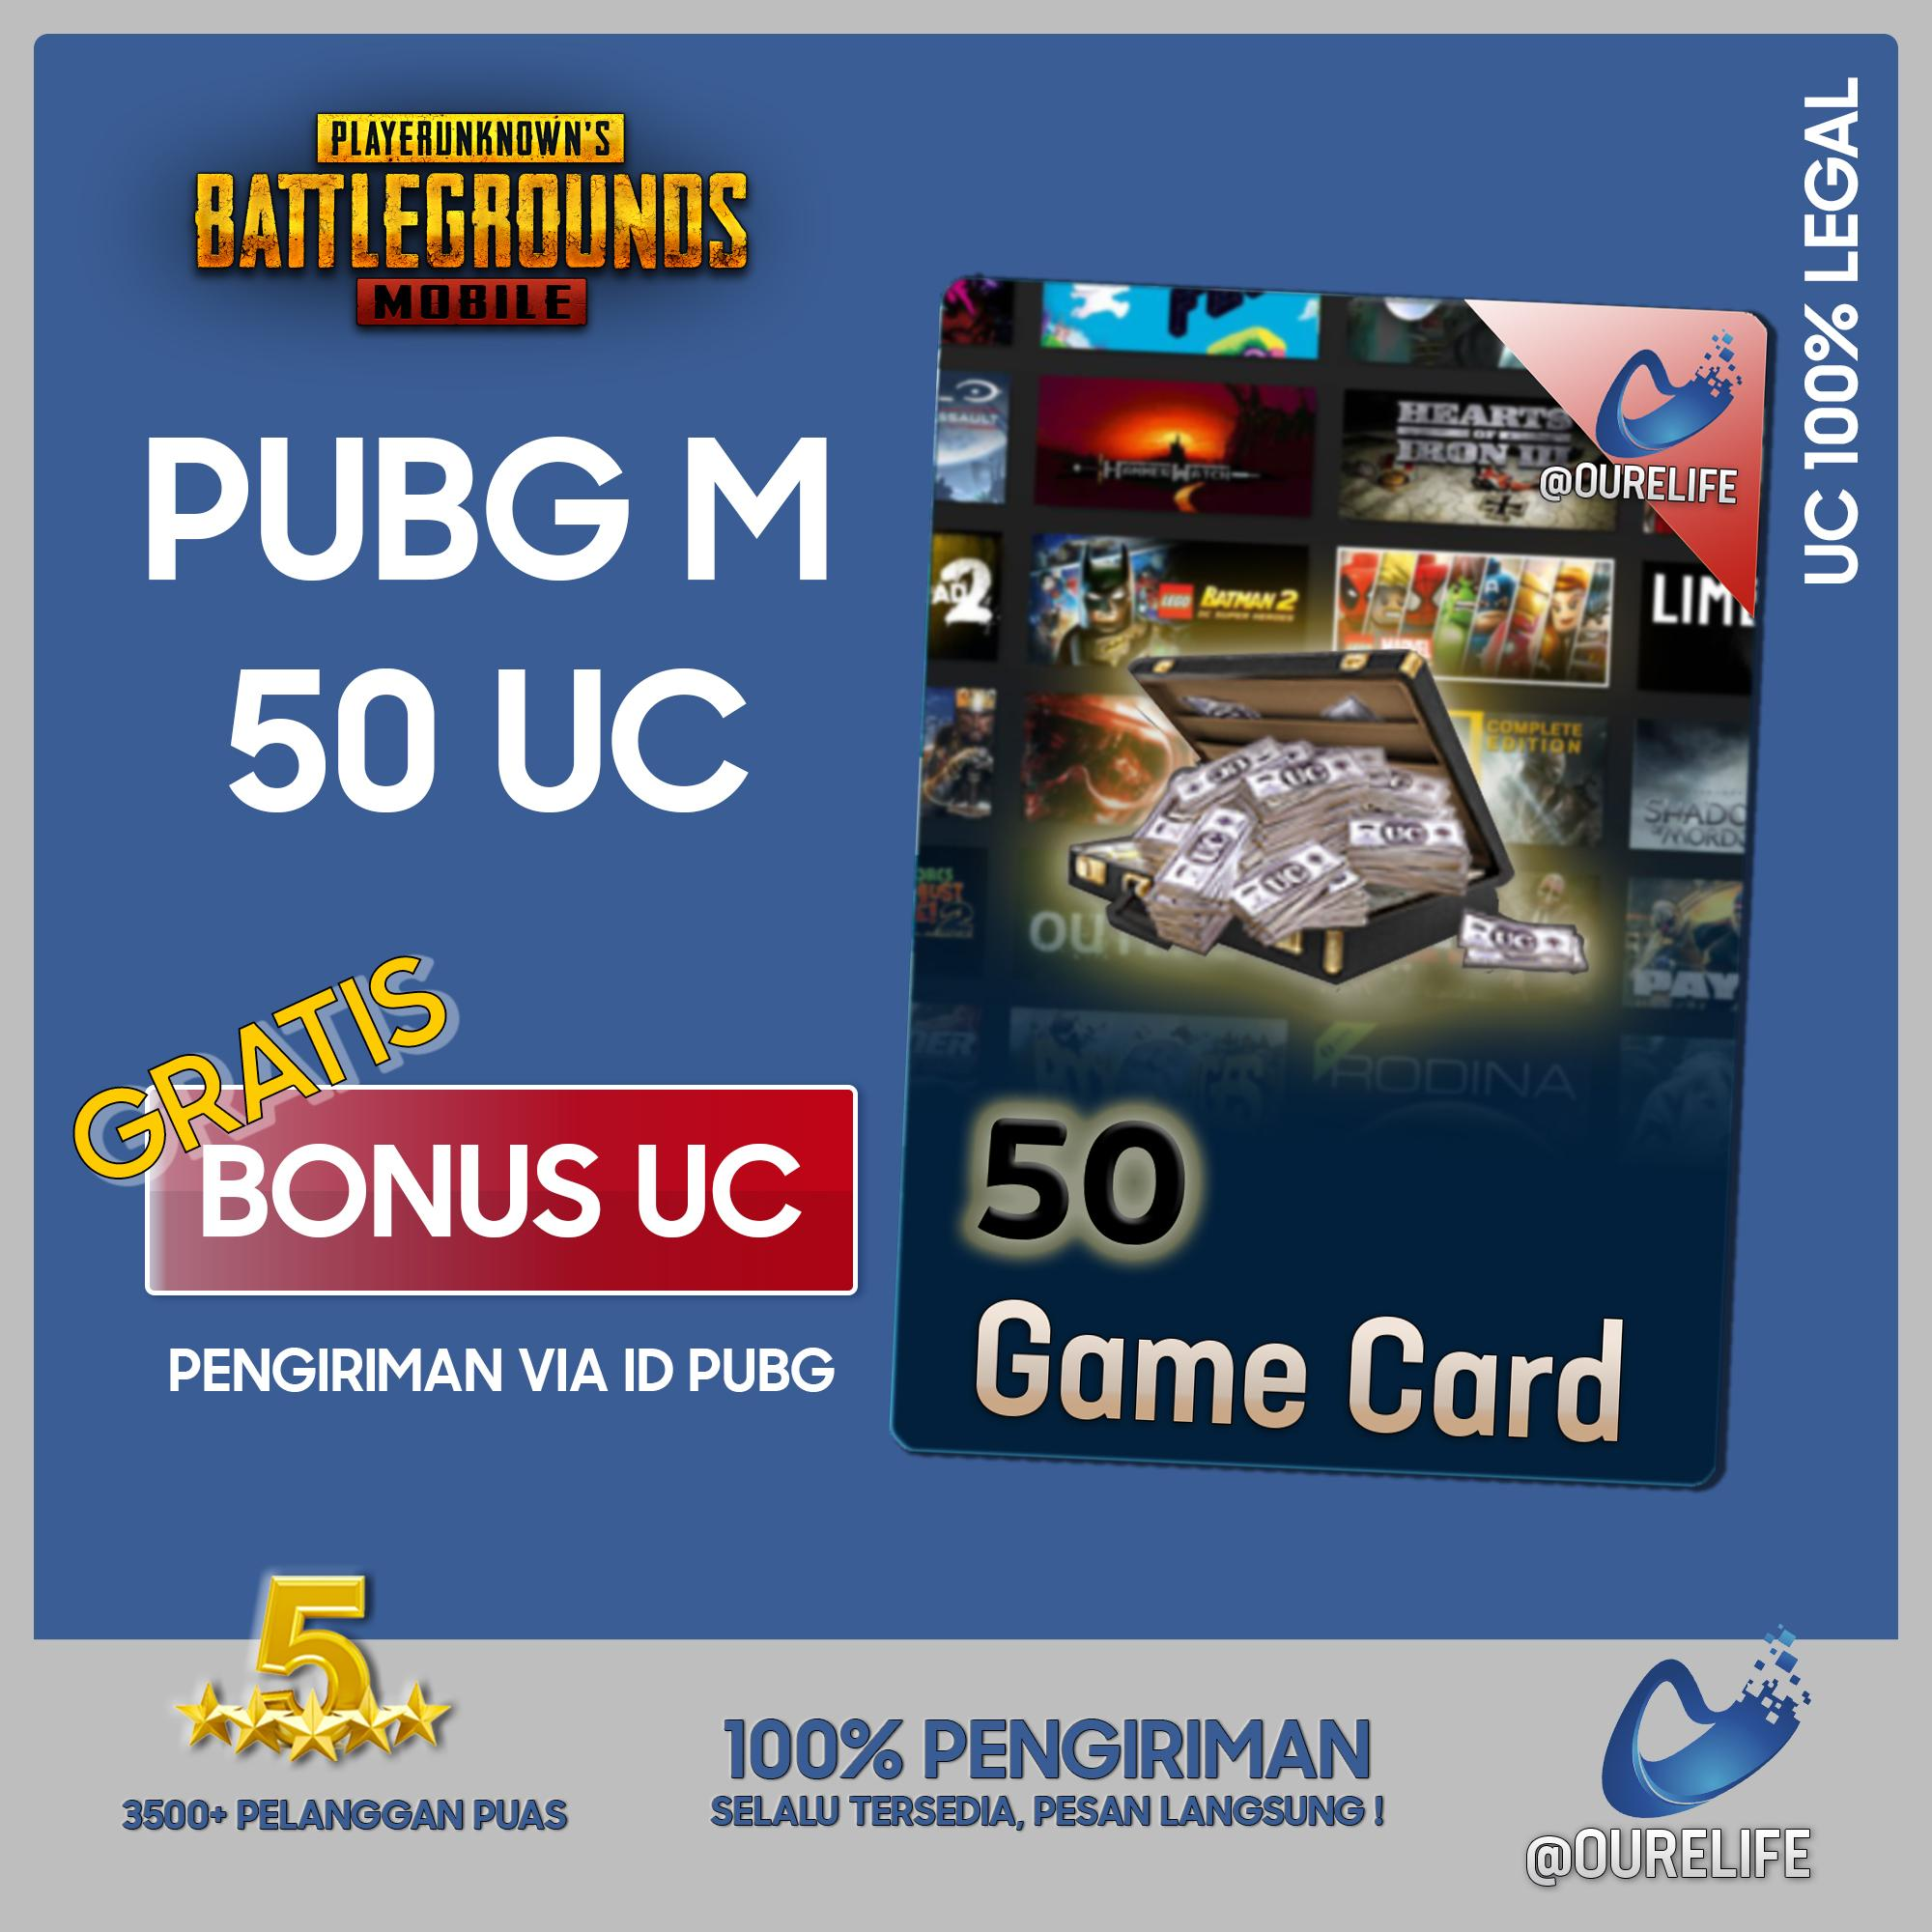 Player Unknowns Battleground Mobile (pubg Mobile) 50 Unknown Cash (uc) By Ourelife.co.id.